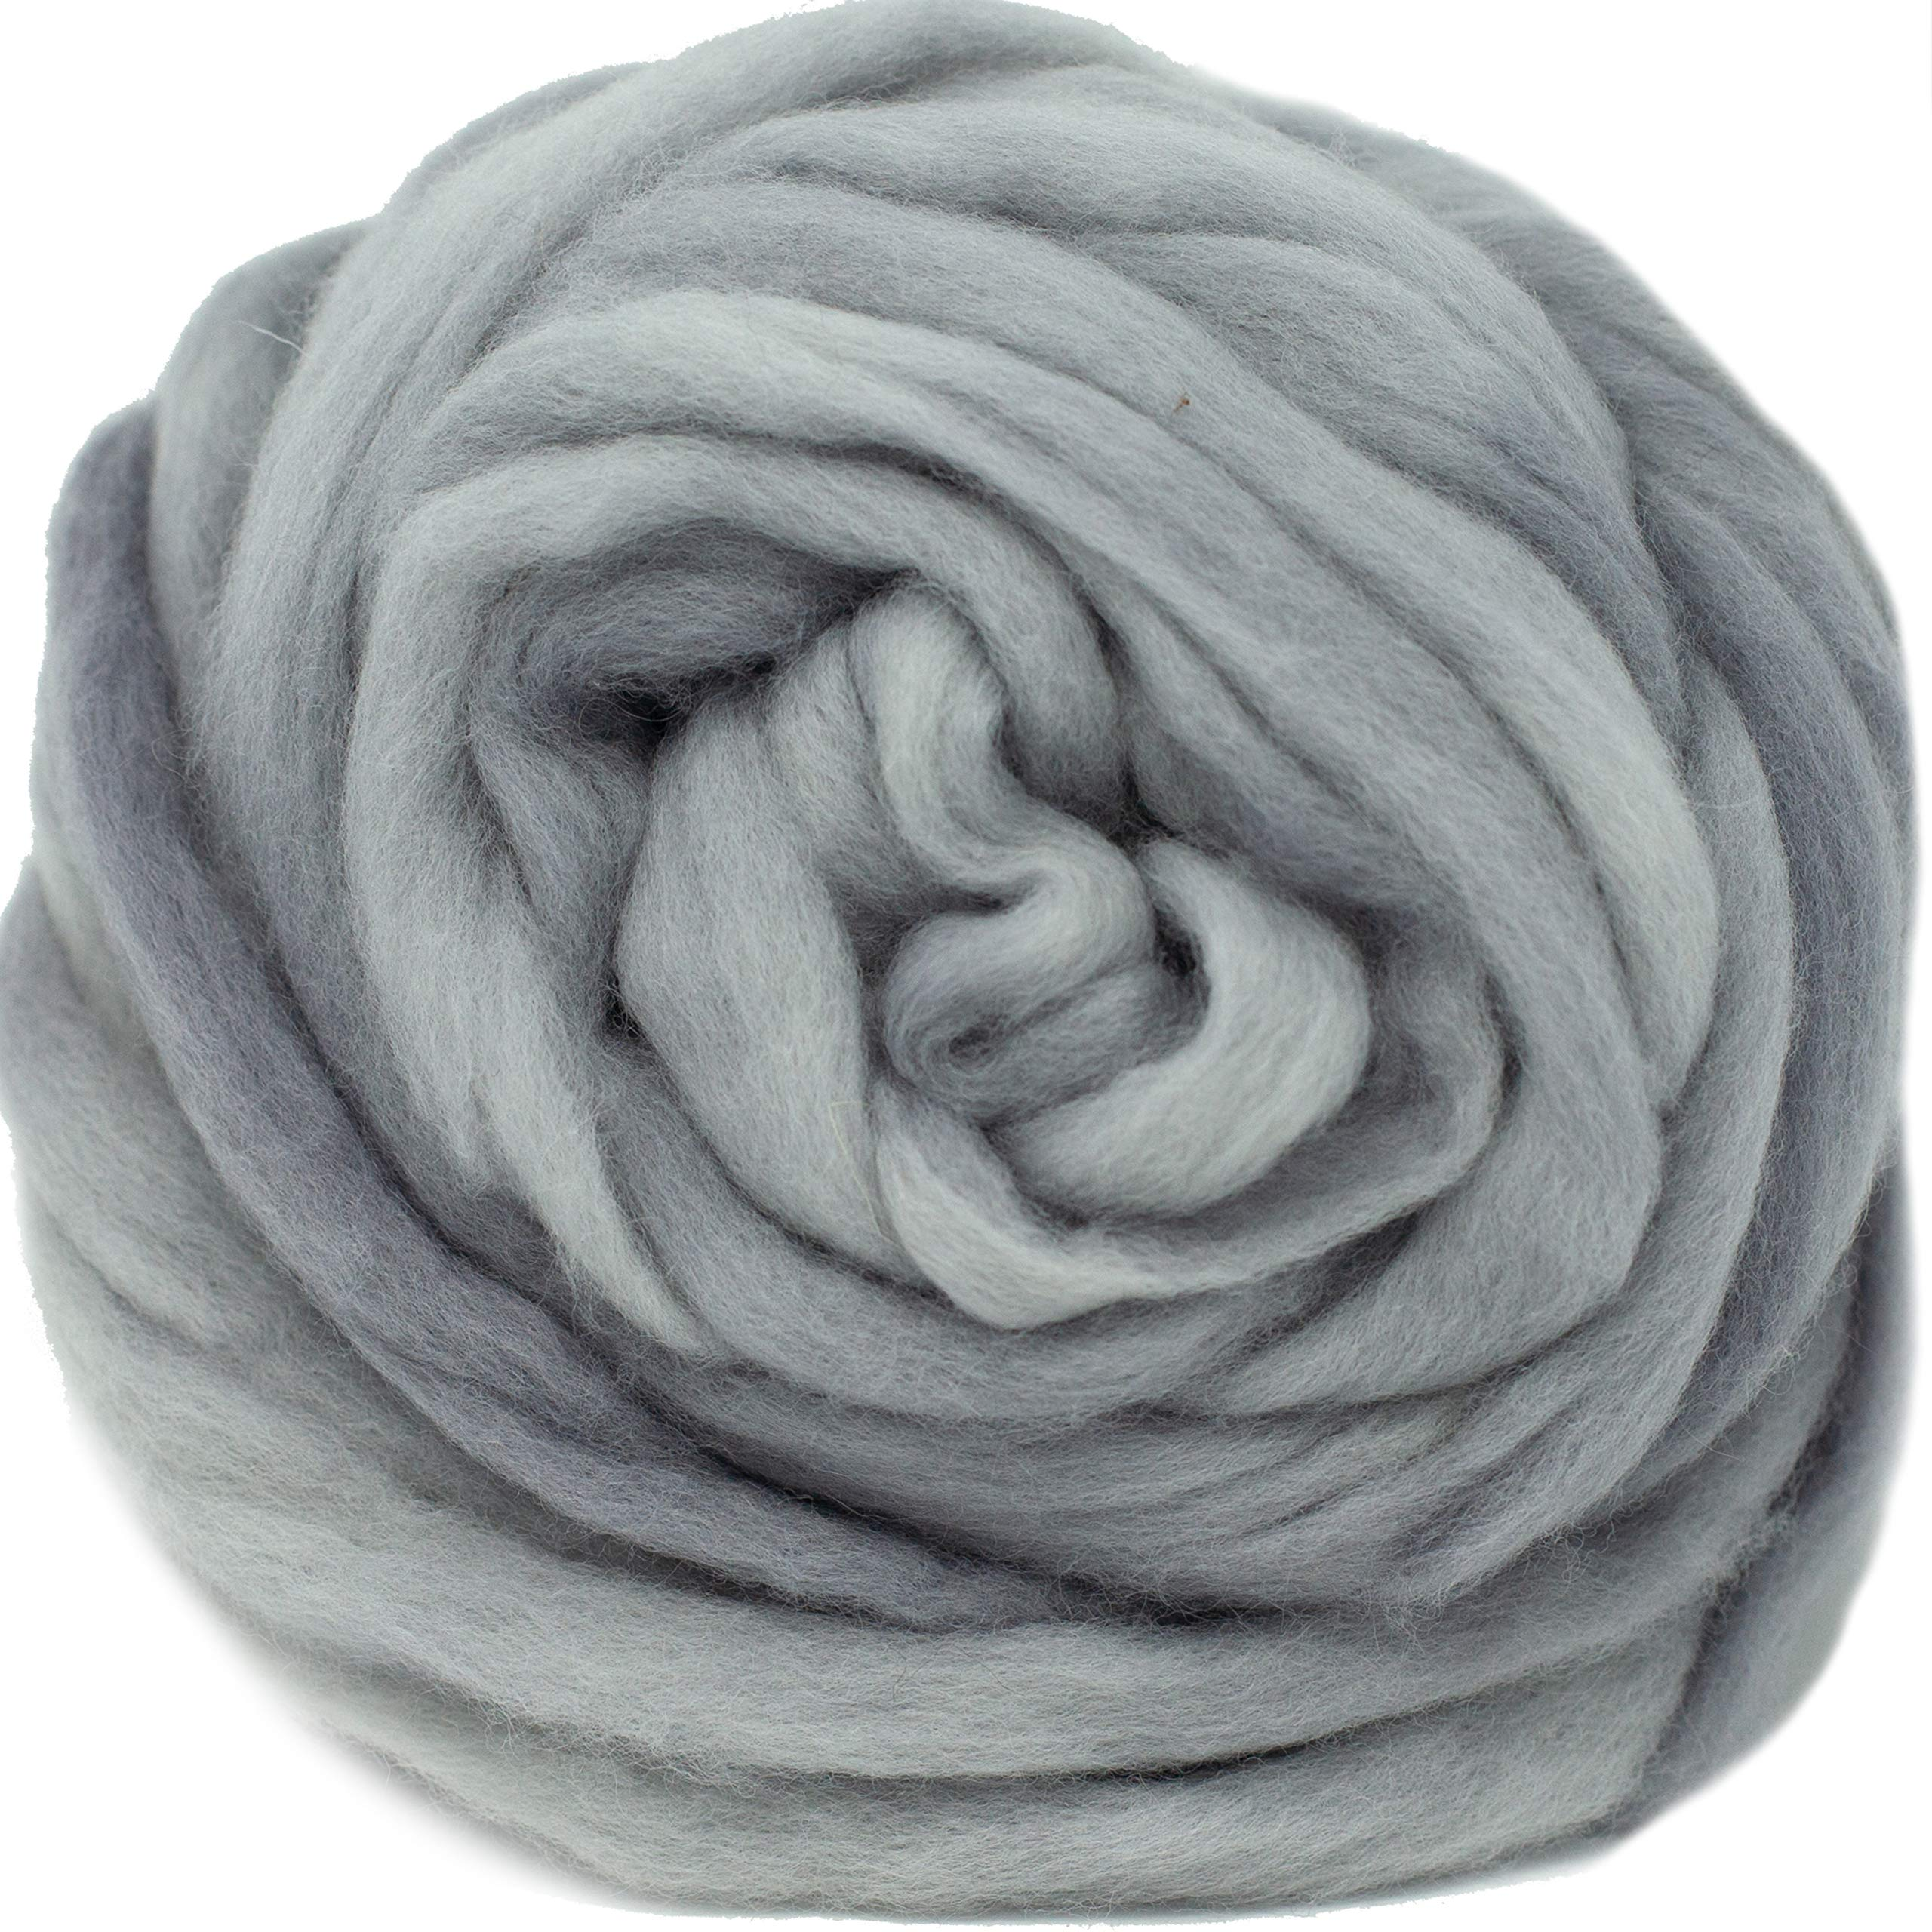 Wool Roving Hand Dyed. Super Soft BFL Combed Top Pre-Drafted for Easy Hand Spinning. Artisanal Craft Fiber ideal for Felting, Weaving, Wall Hangings and Embellishments. 4 Ounce. Silver by Living Dreams Yarn